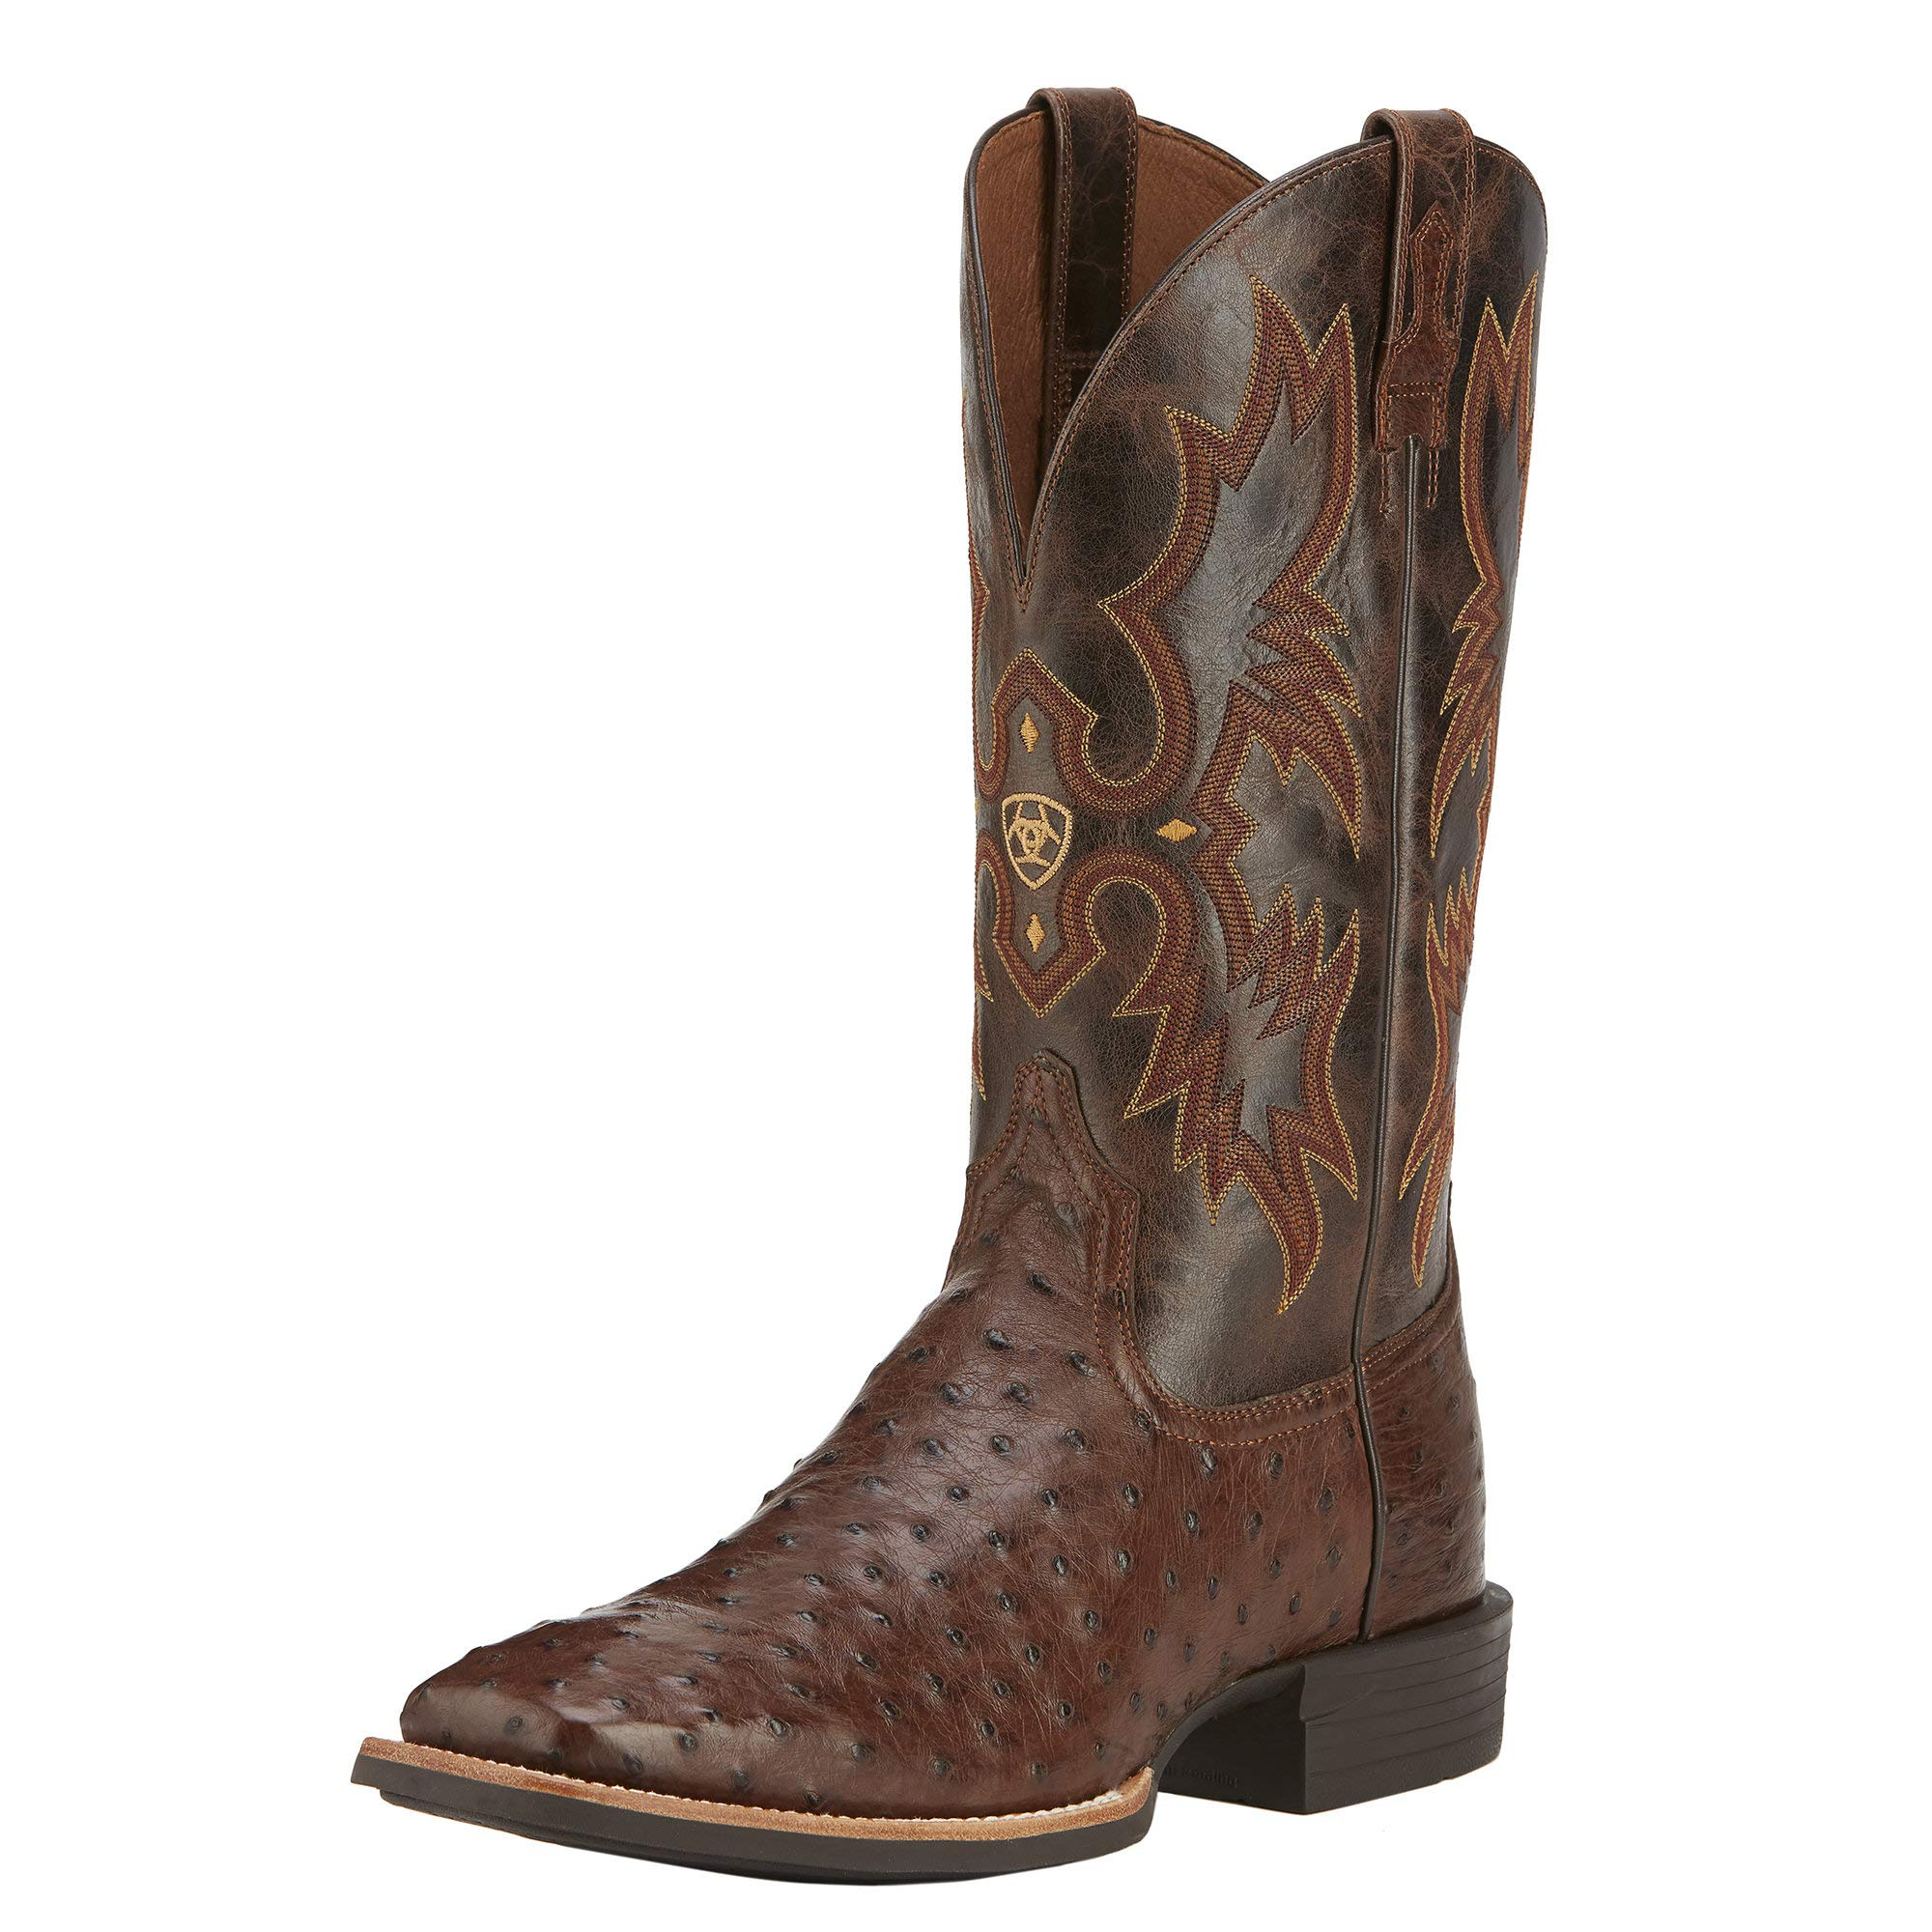 Ariat Men's Quantum Classic Western Cowboy Boot, Antique Tabaco Full-Quill, 8 D US by ARIAT